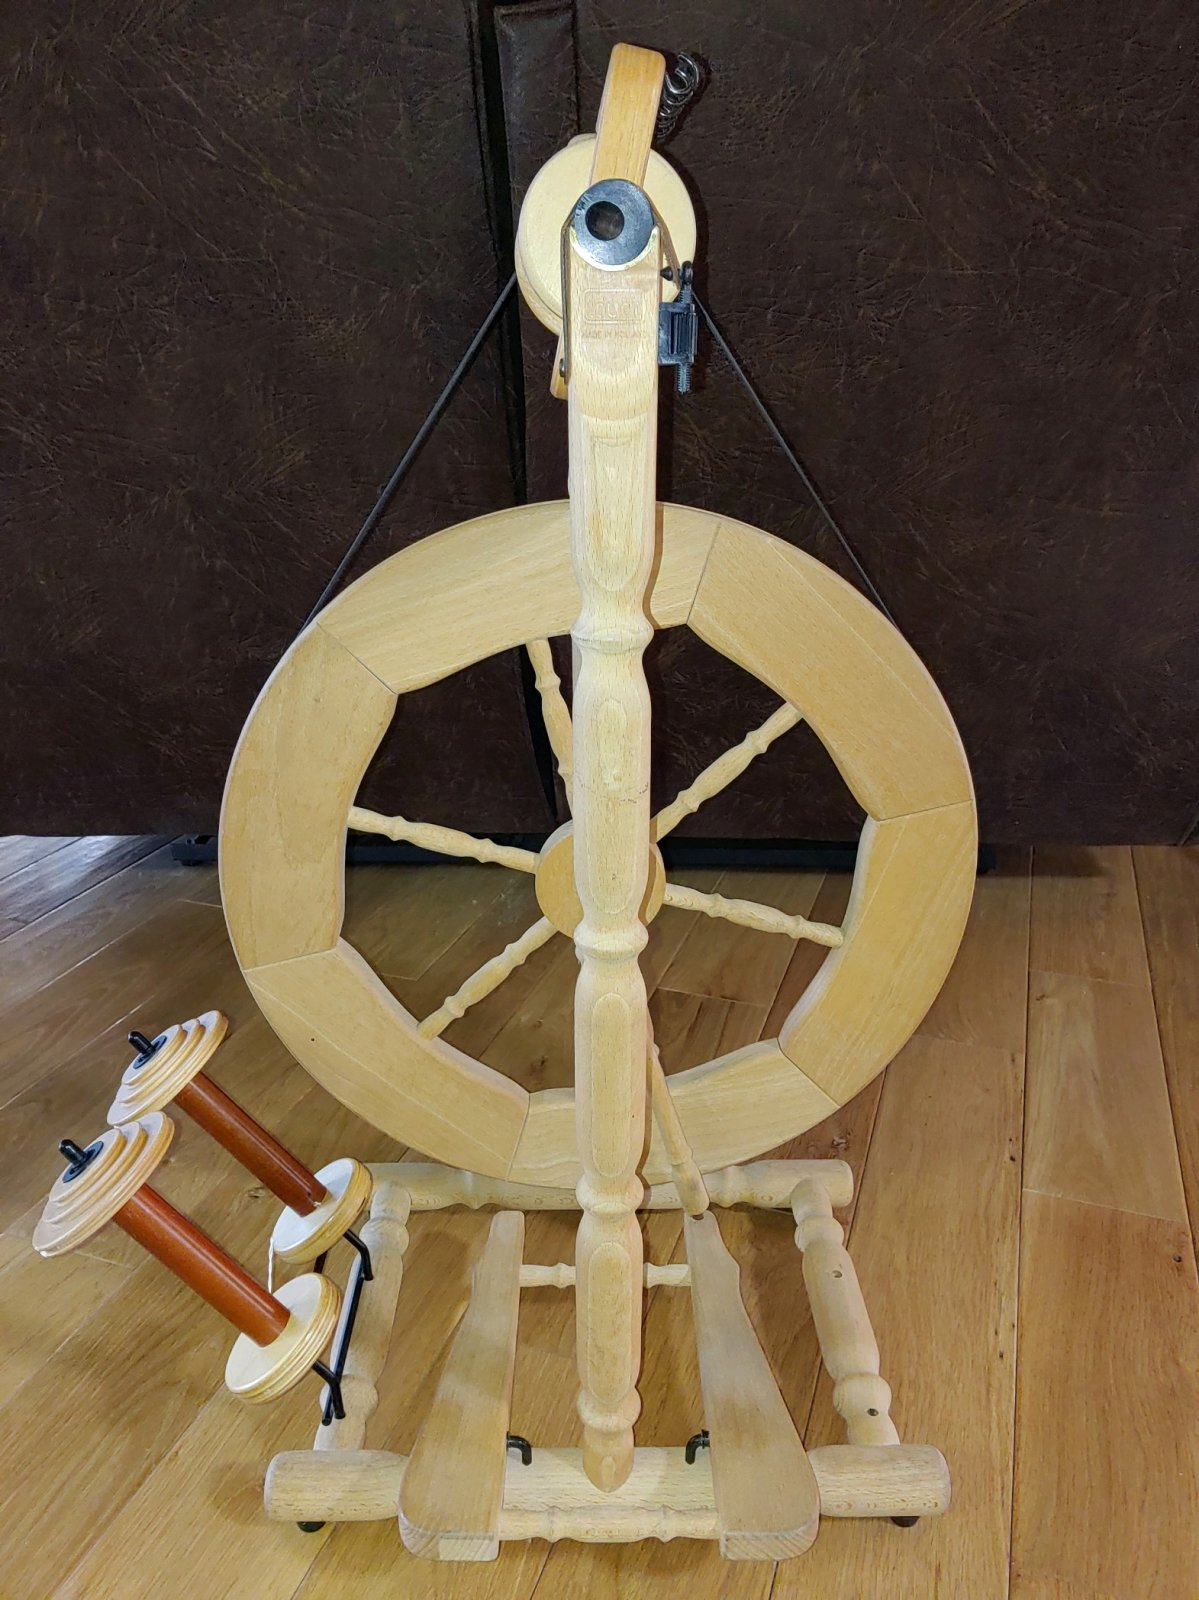 Vintage Louet S70 Spinning Wheel